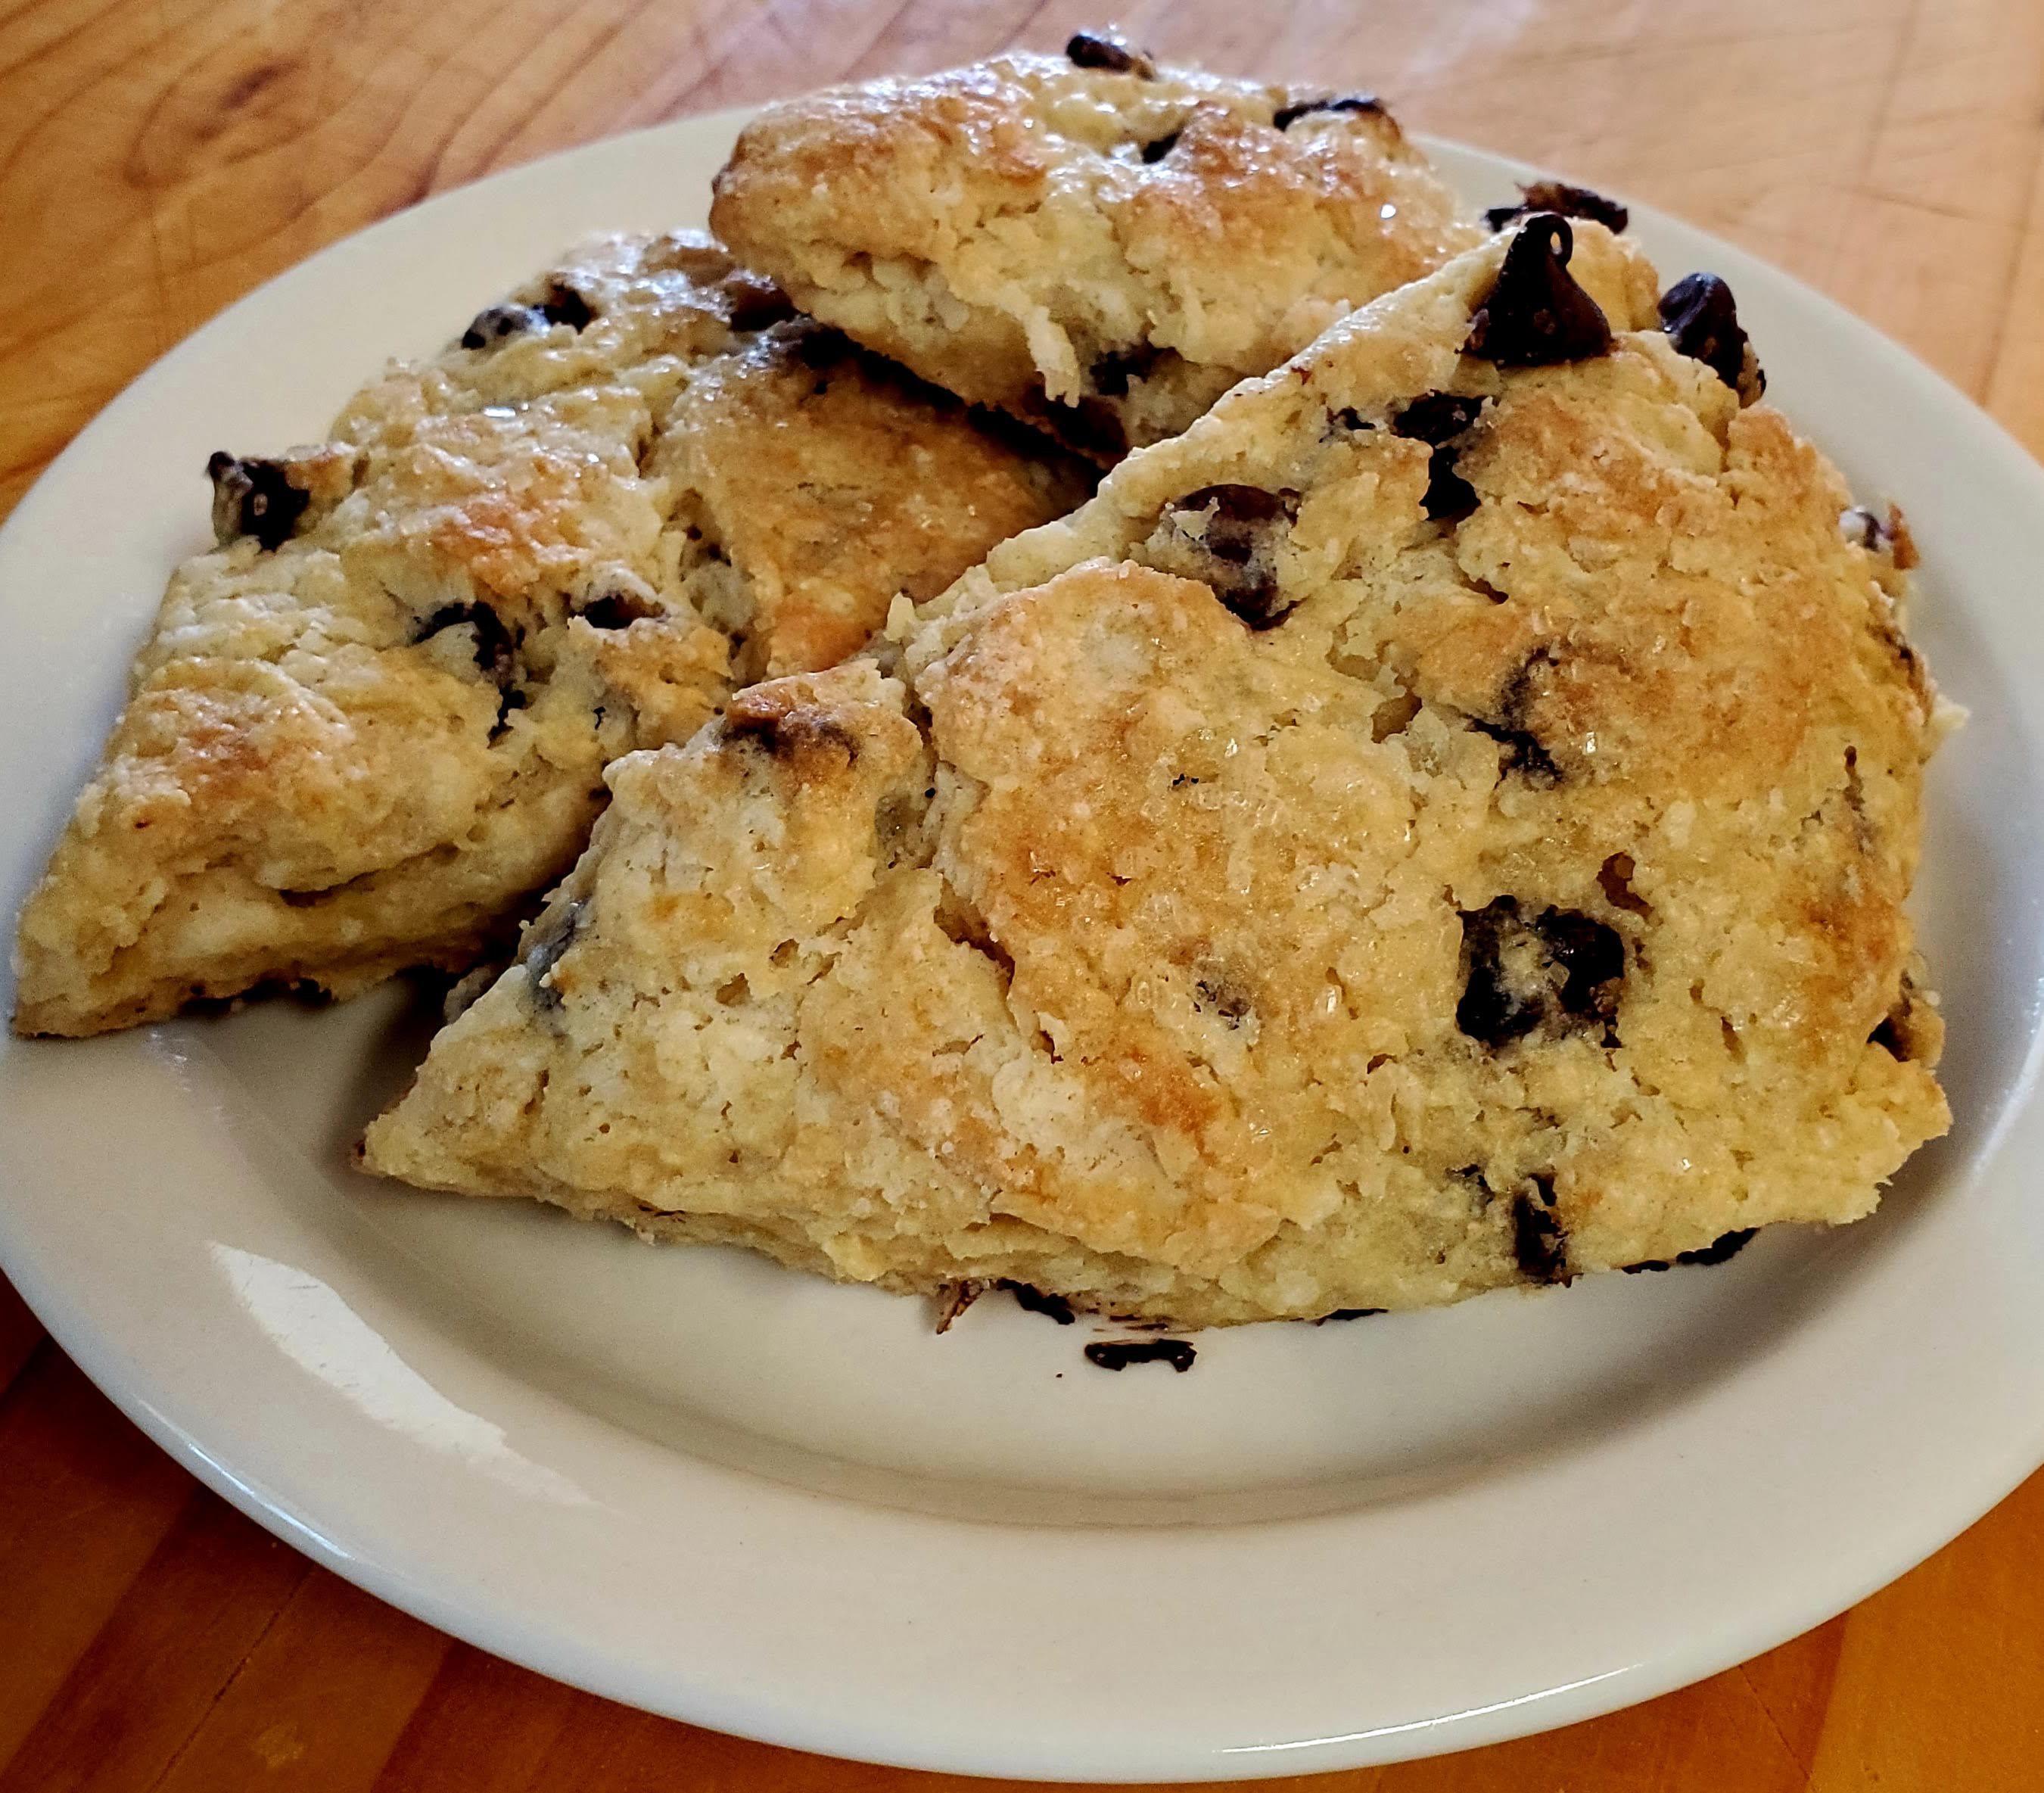 Sourdough scones with choice of mix-in (pictured with Chocolate Chips)